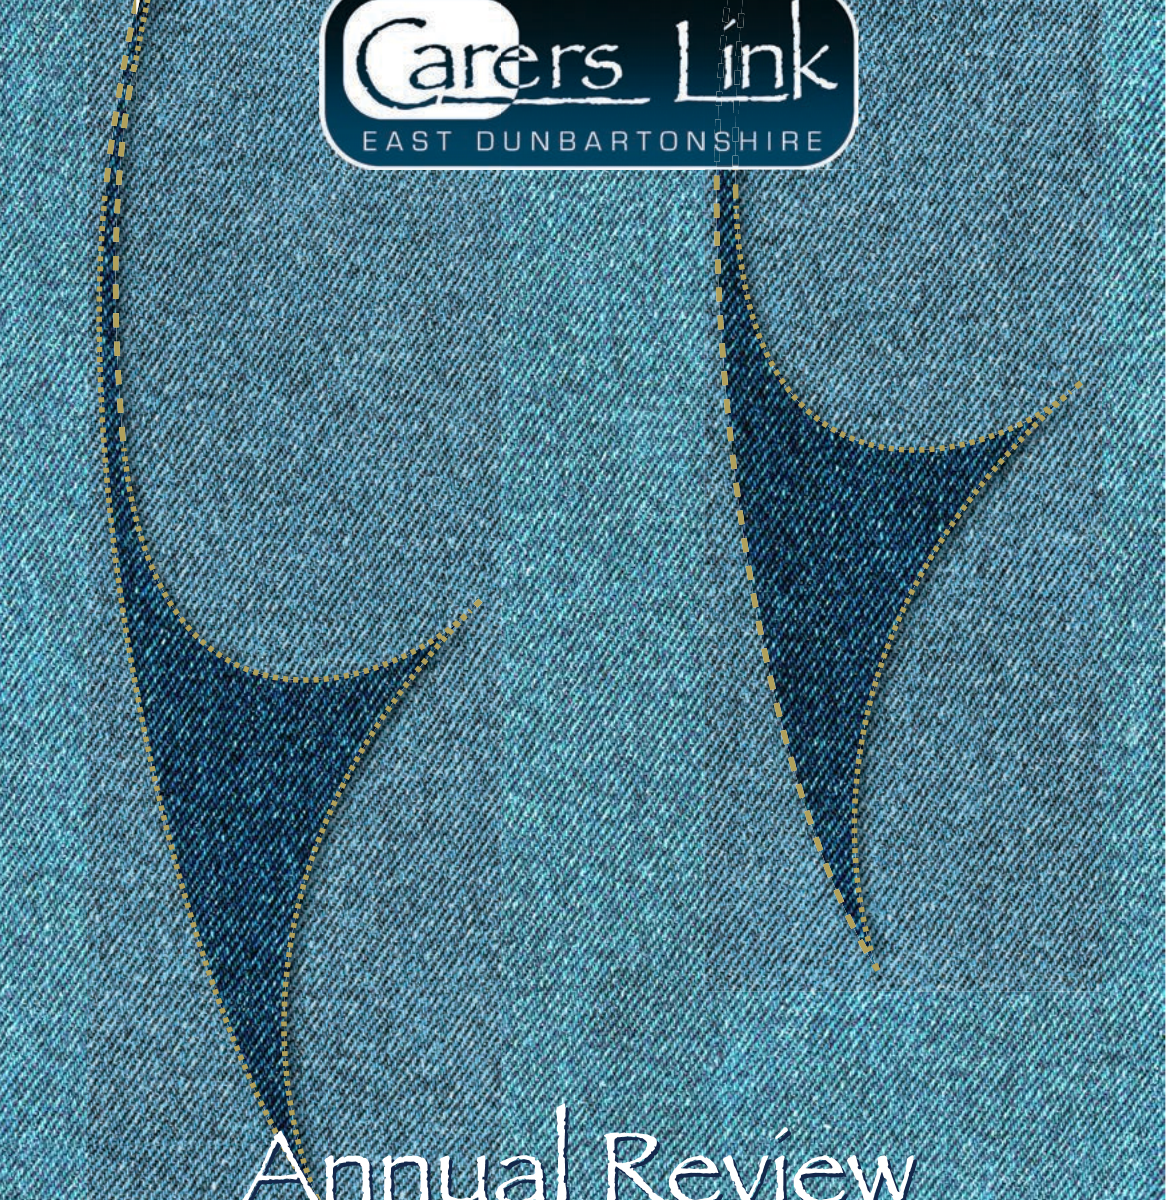 cover of annual report 2015-16